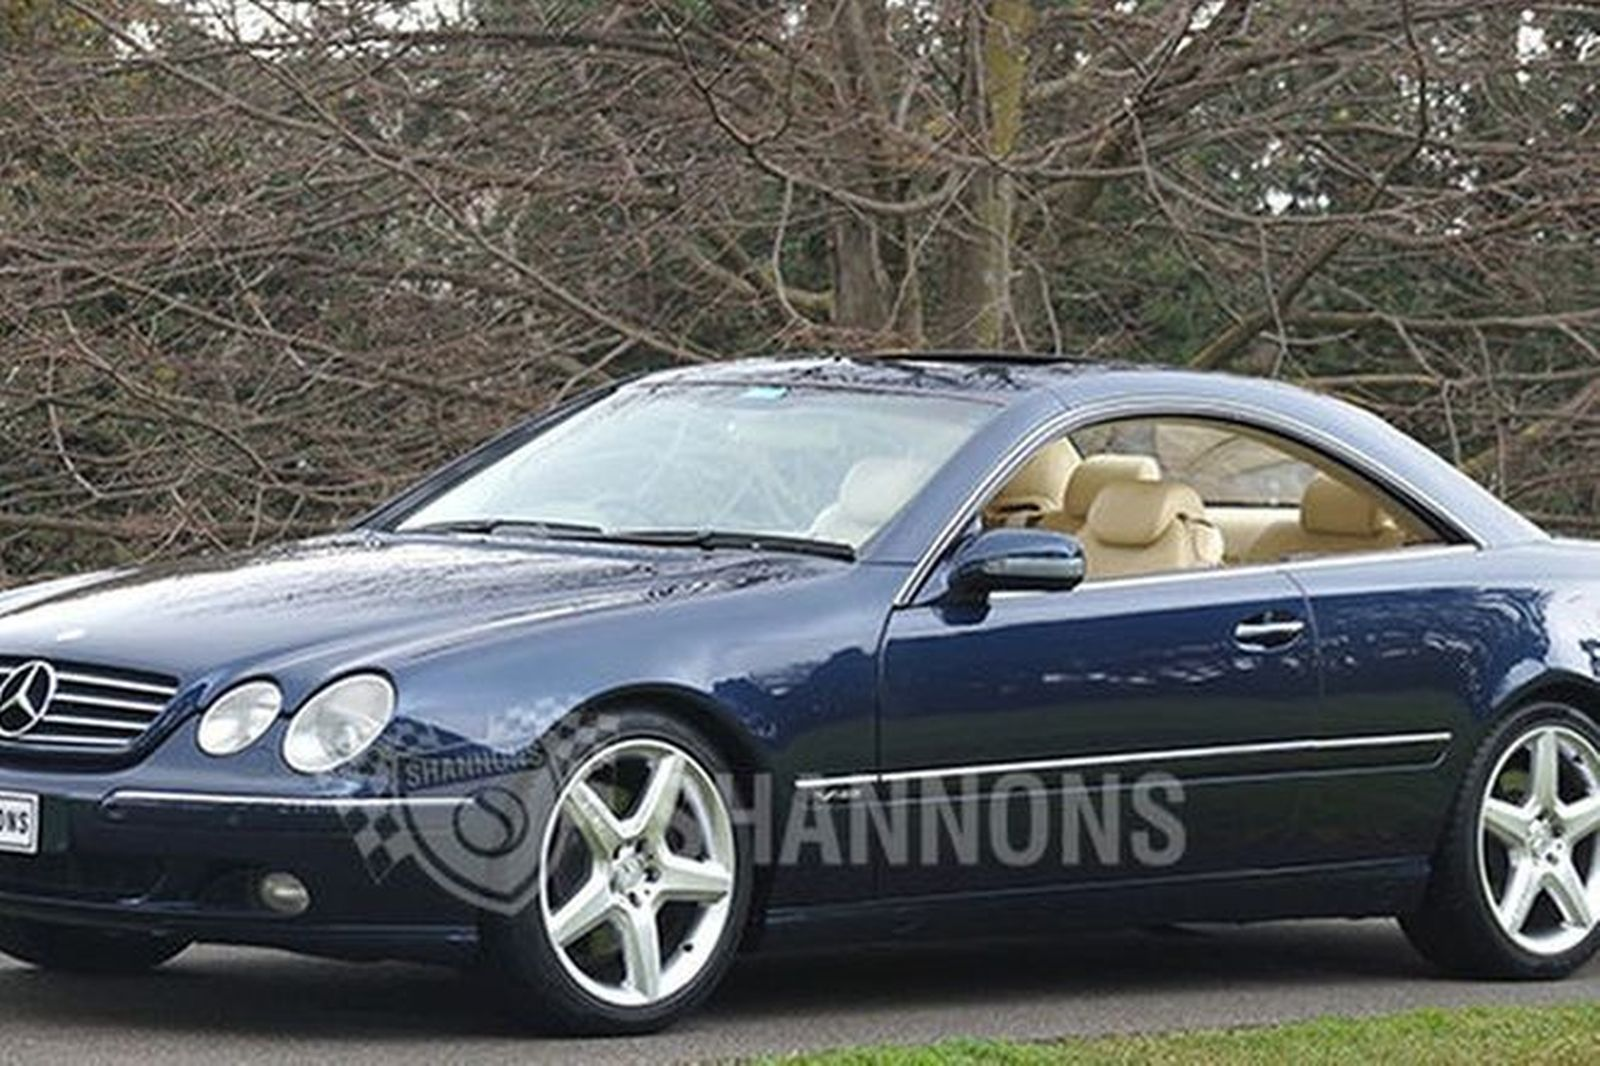 sold mercedes benz cl600 coupe auctions lot 22 shannons. Black Bedroom Furniture Sets. Home Design Ideas